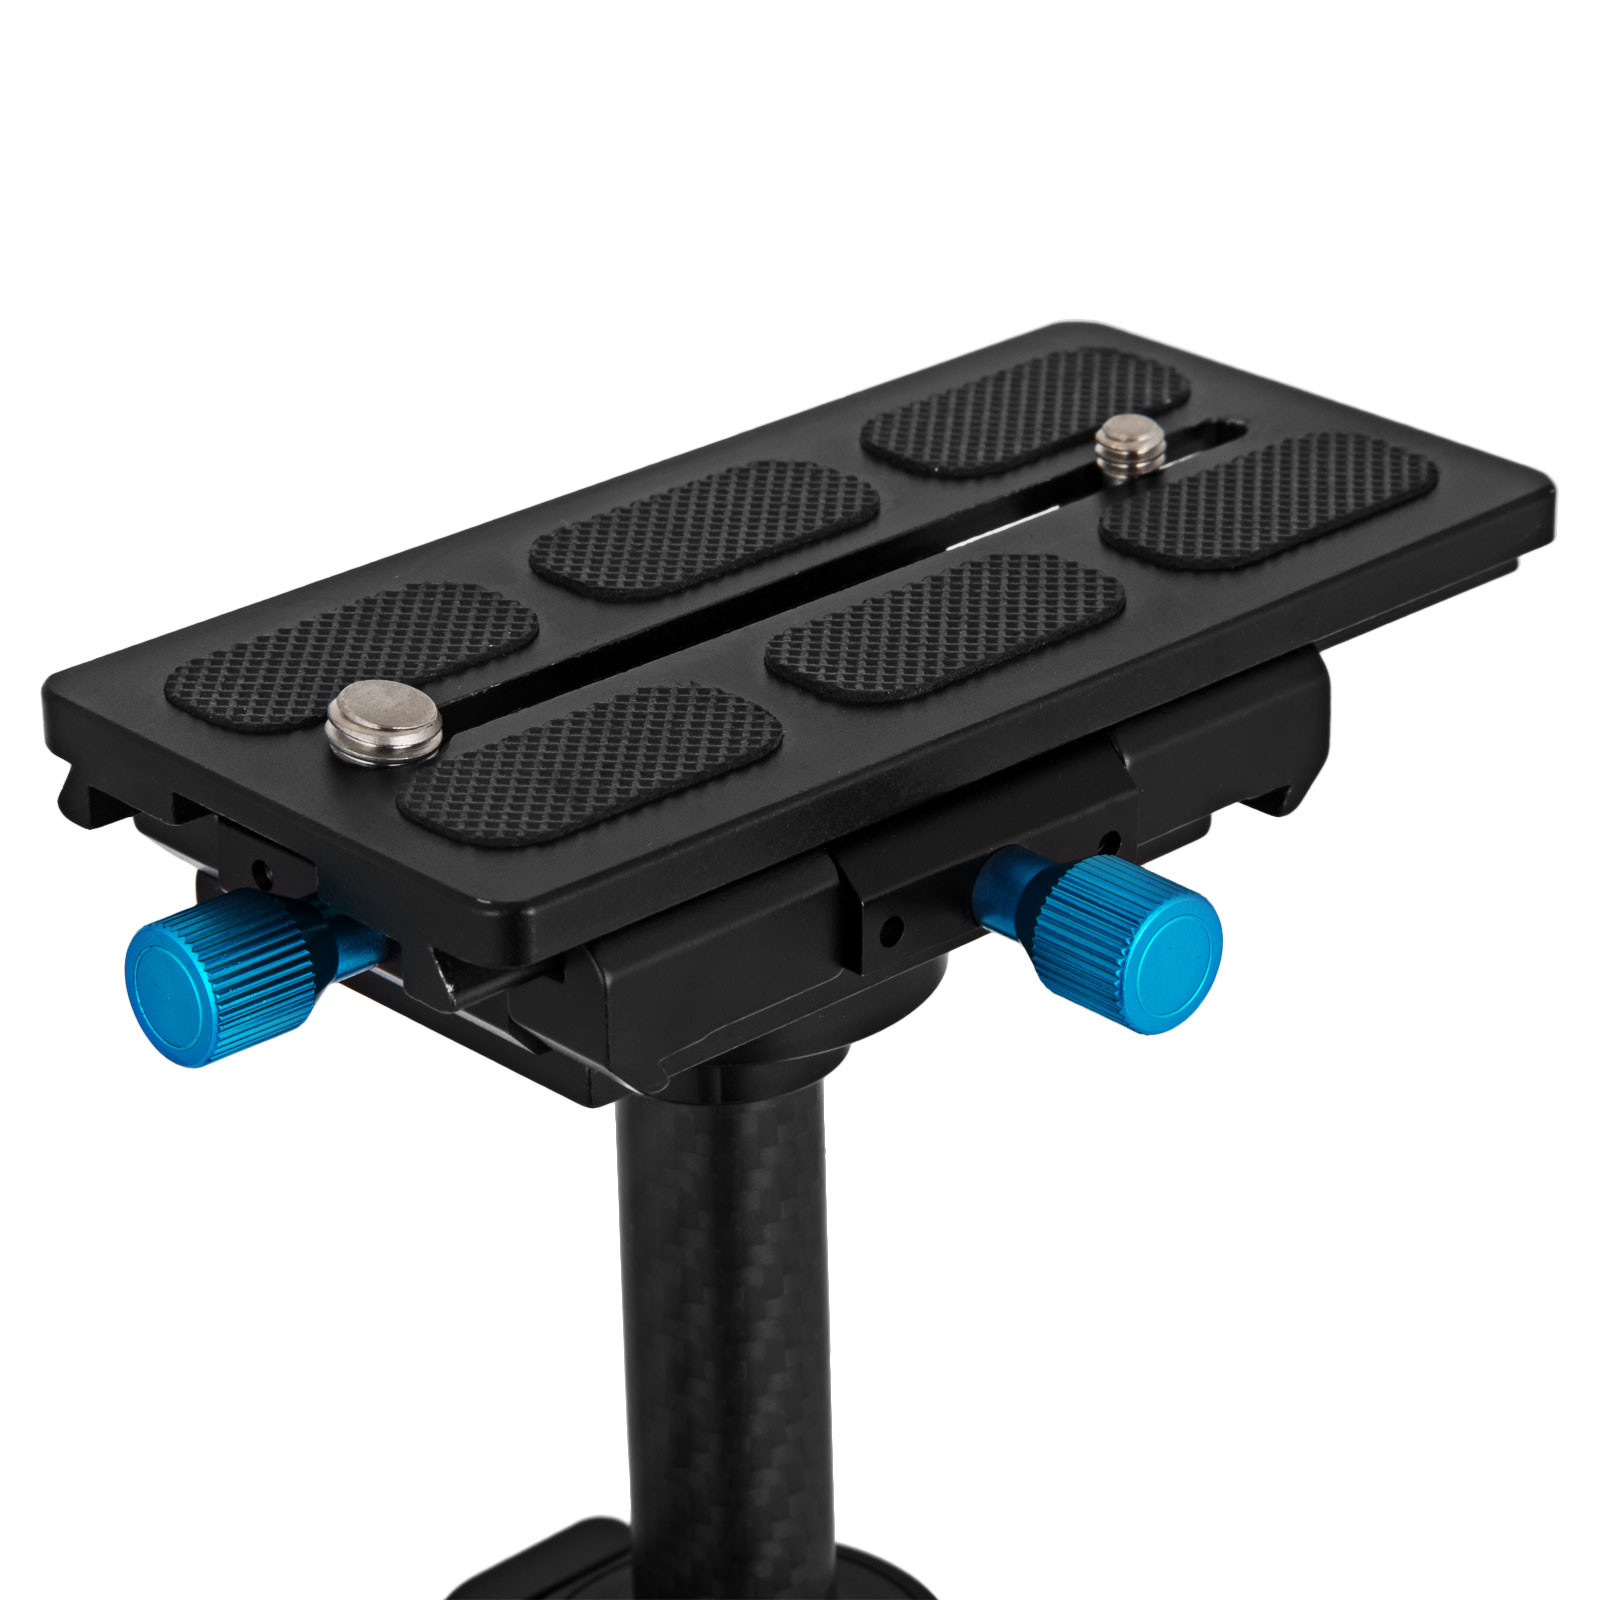 S60T-S60N-Handheld-Steady-Stabilizer-360-For-DSLR-Canon-Camera thumbnail 35